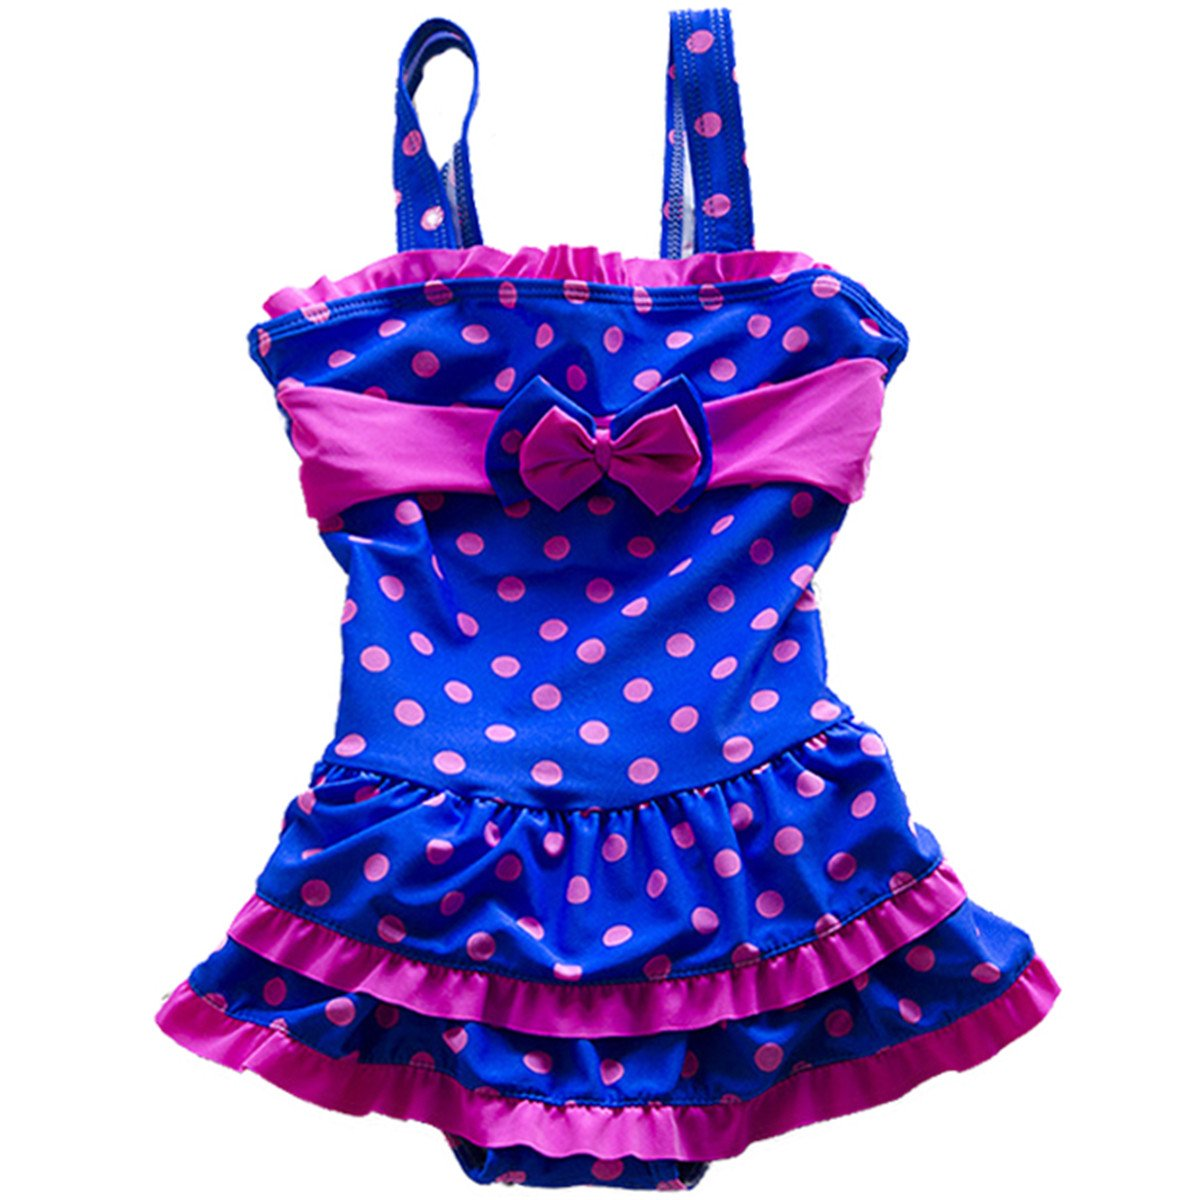 Baby Girls Toddler Kids Polka Dot One Piece Blue Skirt Swimsuit Swimwear With Caps SEBDFC103